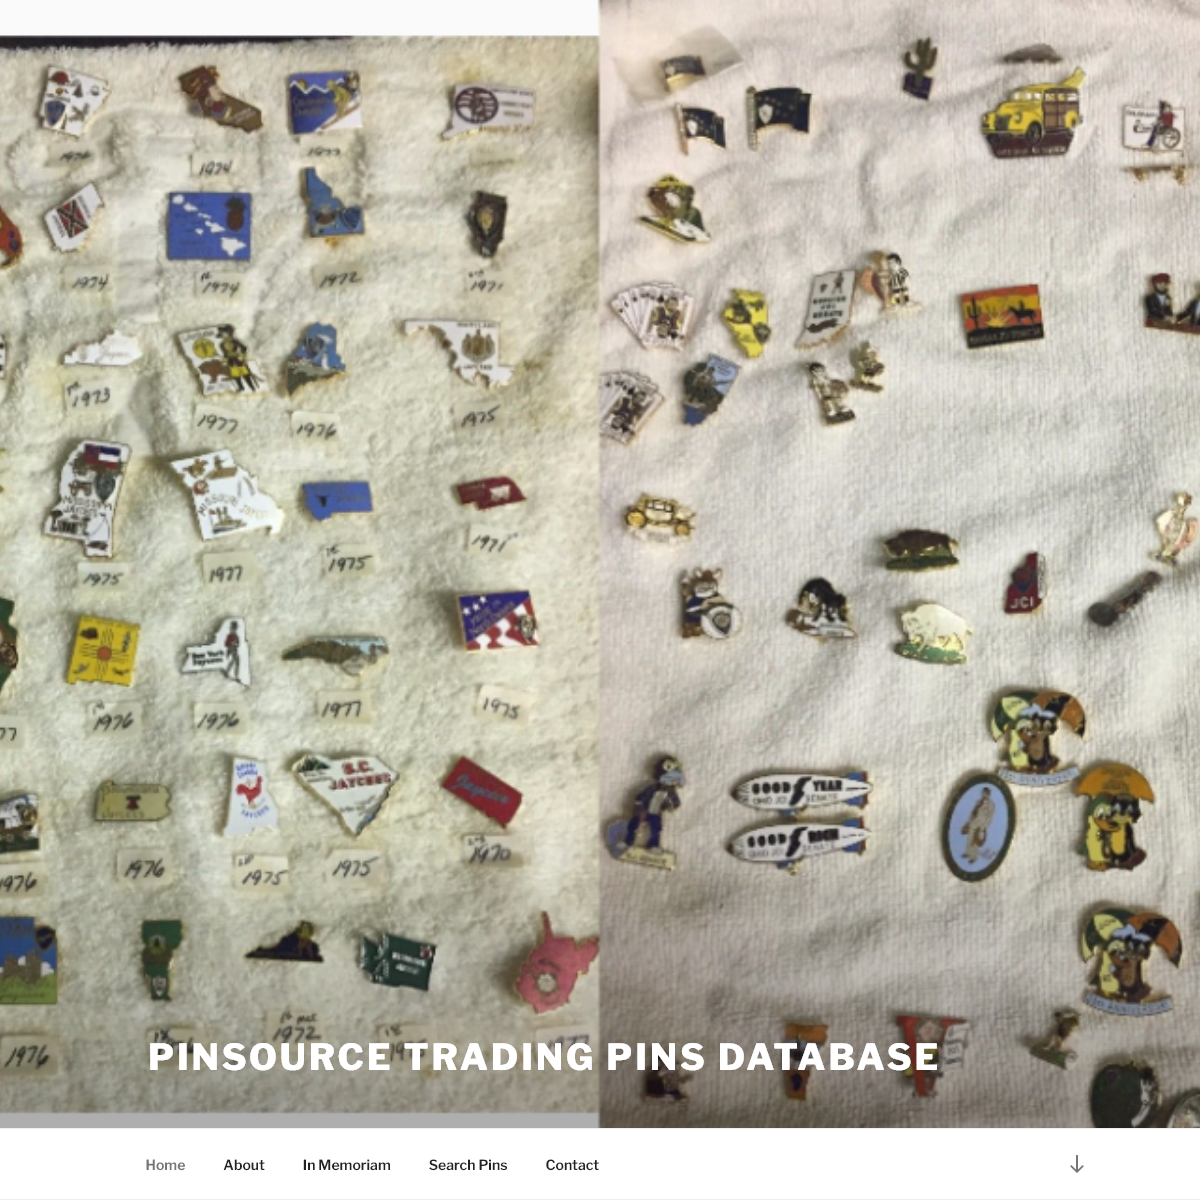 Pinsource Trading Pins Database